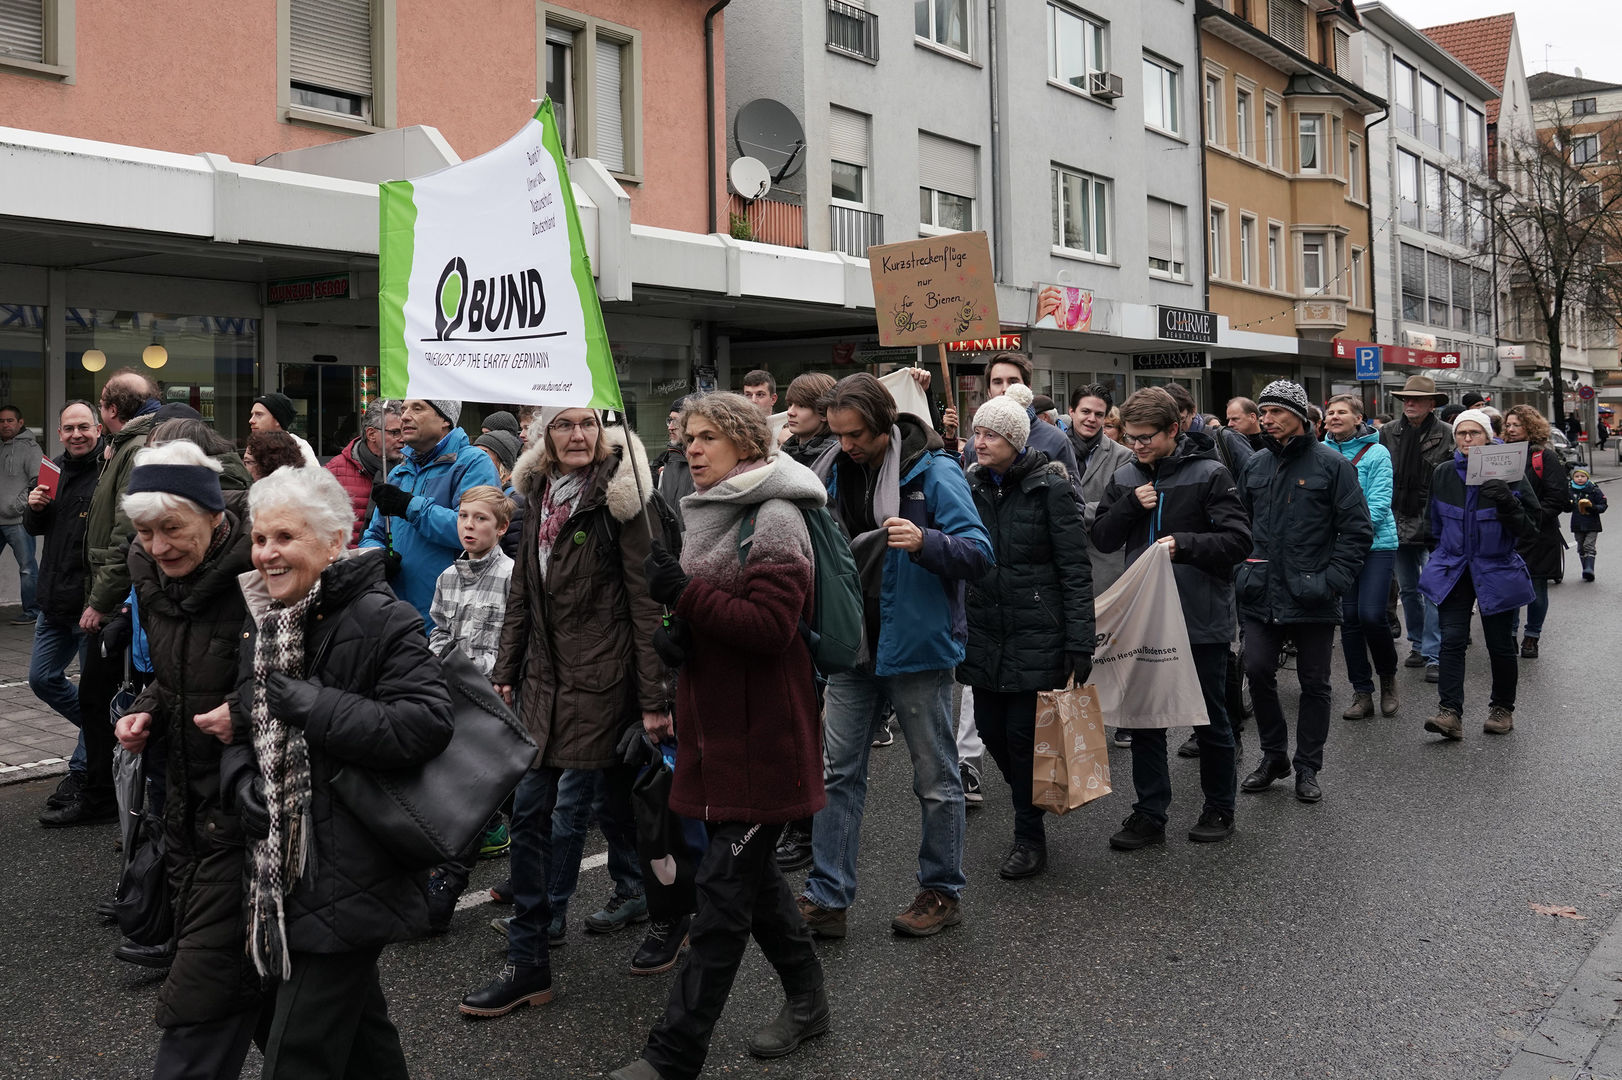 Teilnahem an der Friday-for-Future Demo in Singen am 29.11.2019